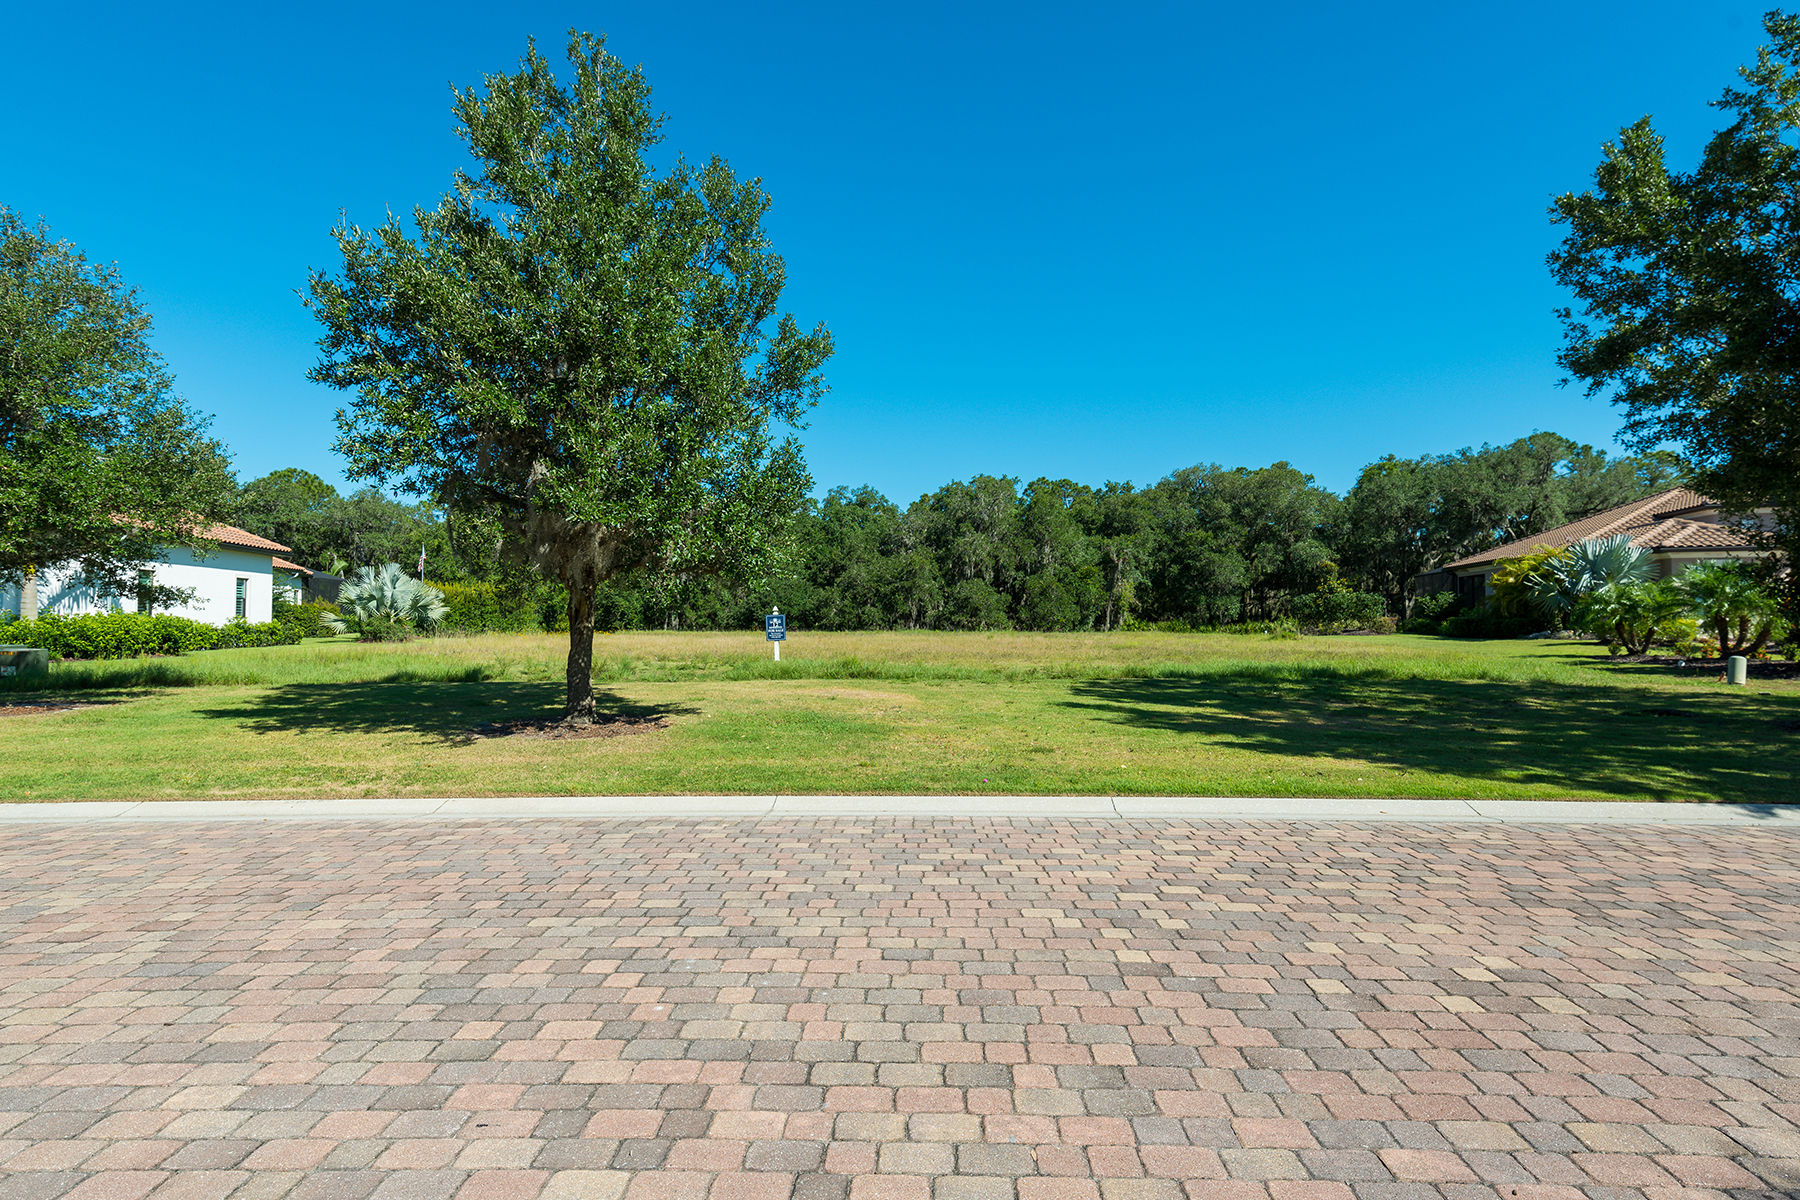 Land for Sale at THE CONCESSION 19419 Beacon Park Pl Pl, Bradenton, Florida 34202 United States